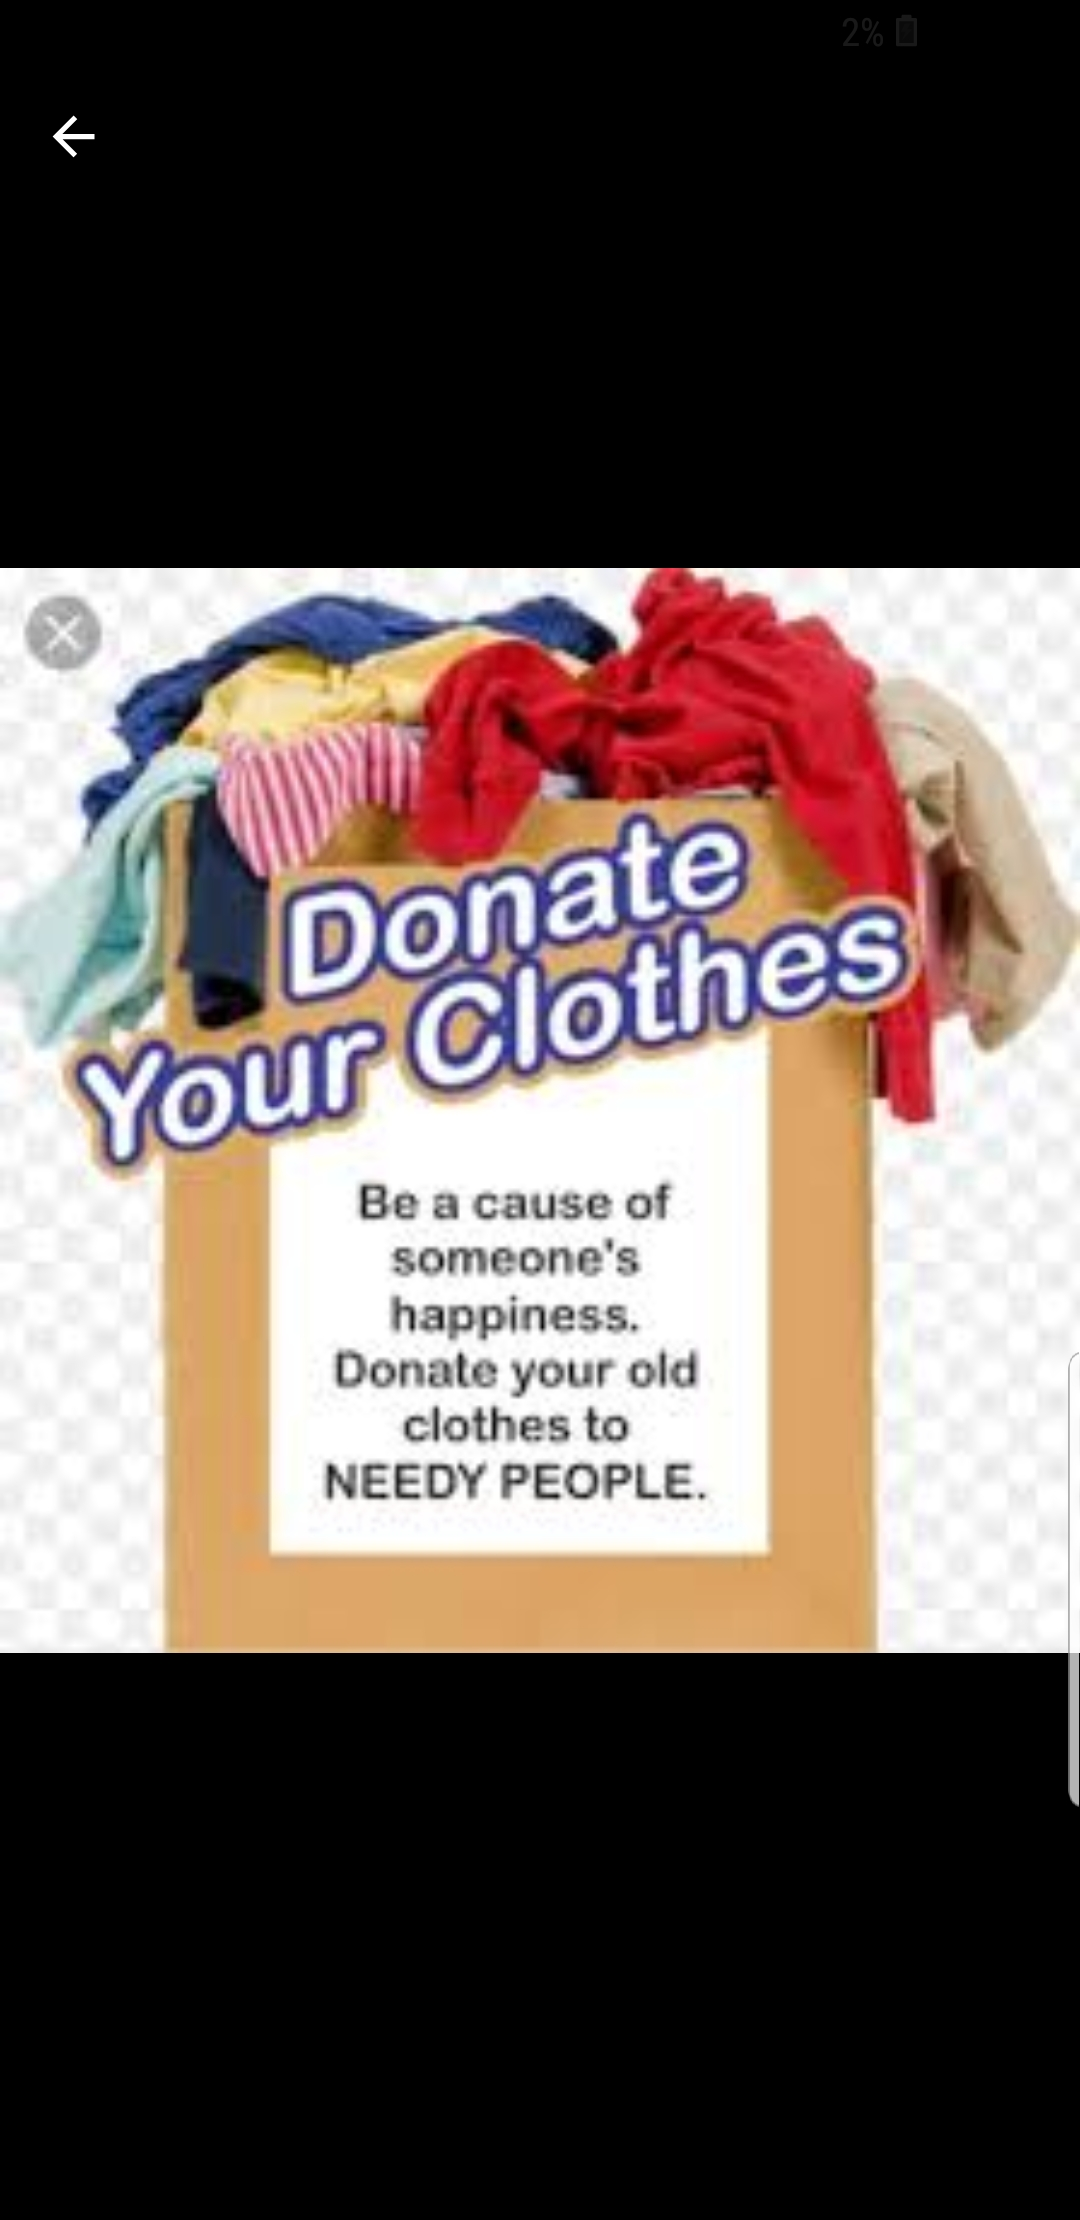 Clothes and household stuff  needed for Charity and donations